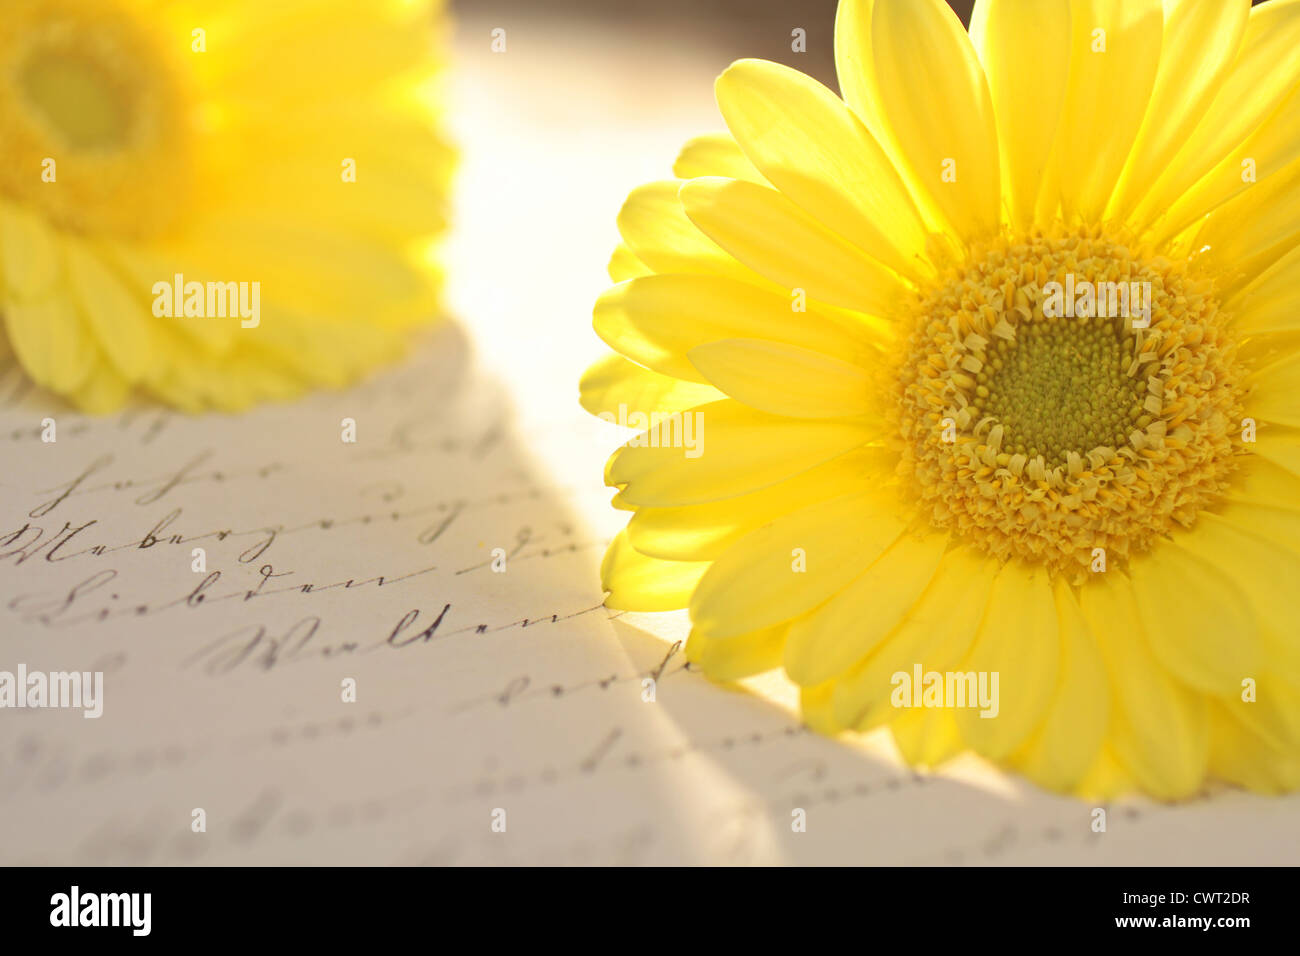 Close up of bright yellow flower and Old Letter - Stock Image